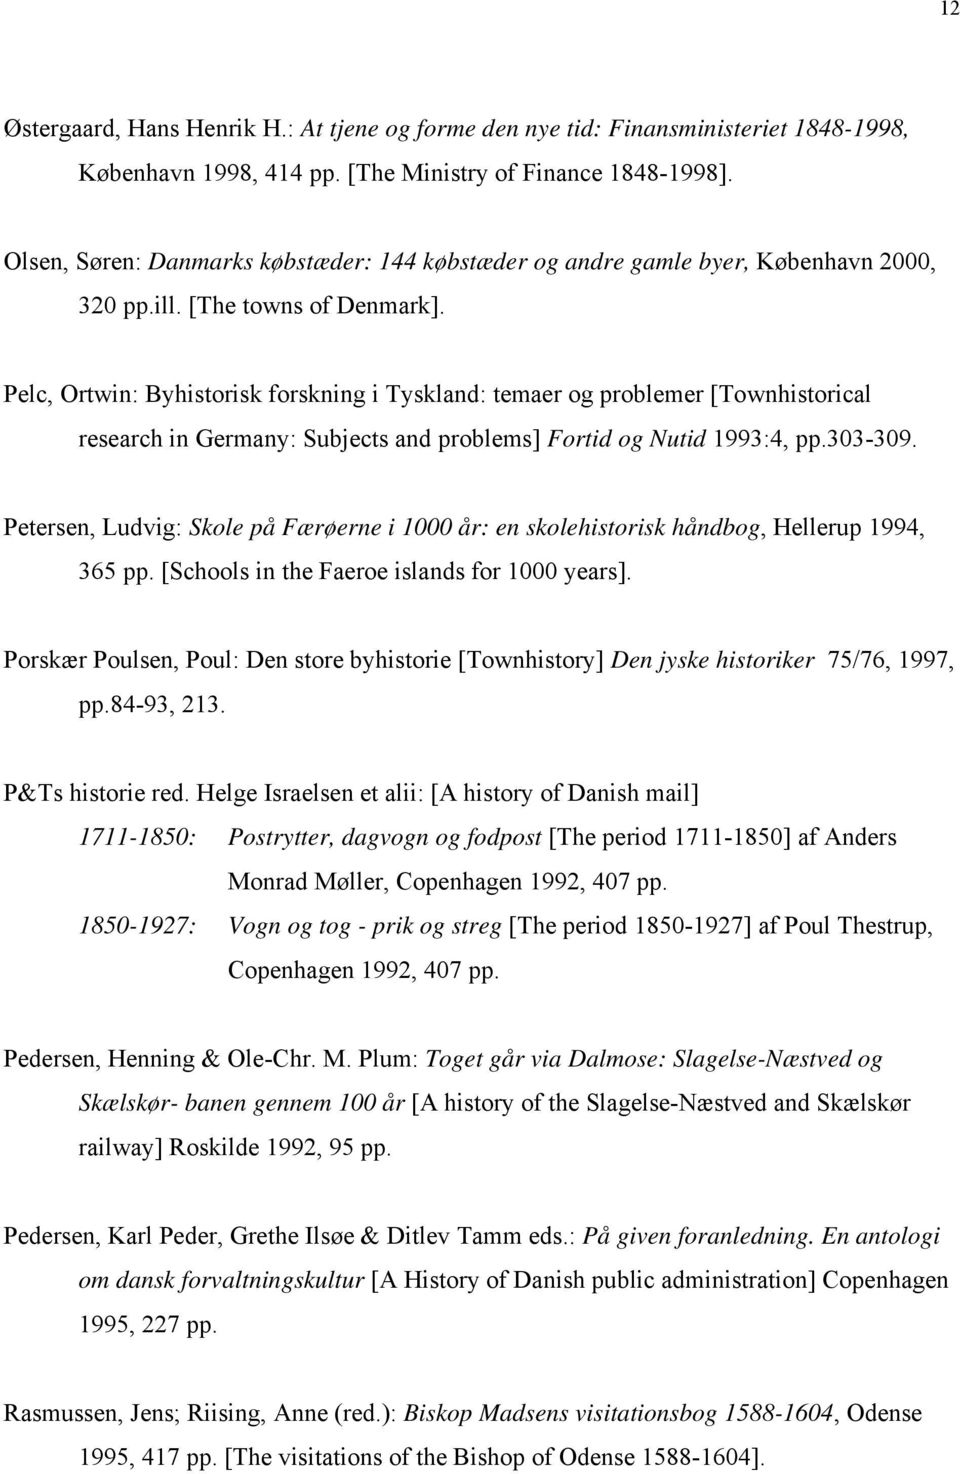 Pelc, Ortwin: Byhistorisk forskning i Tyskland: temaer og problemer [Townhistorical research in Germany: Subjects and problems] Fortid og Nutid 1993:4, pp.303-309.